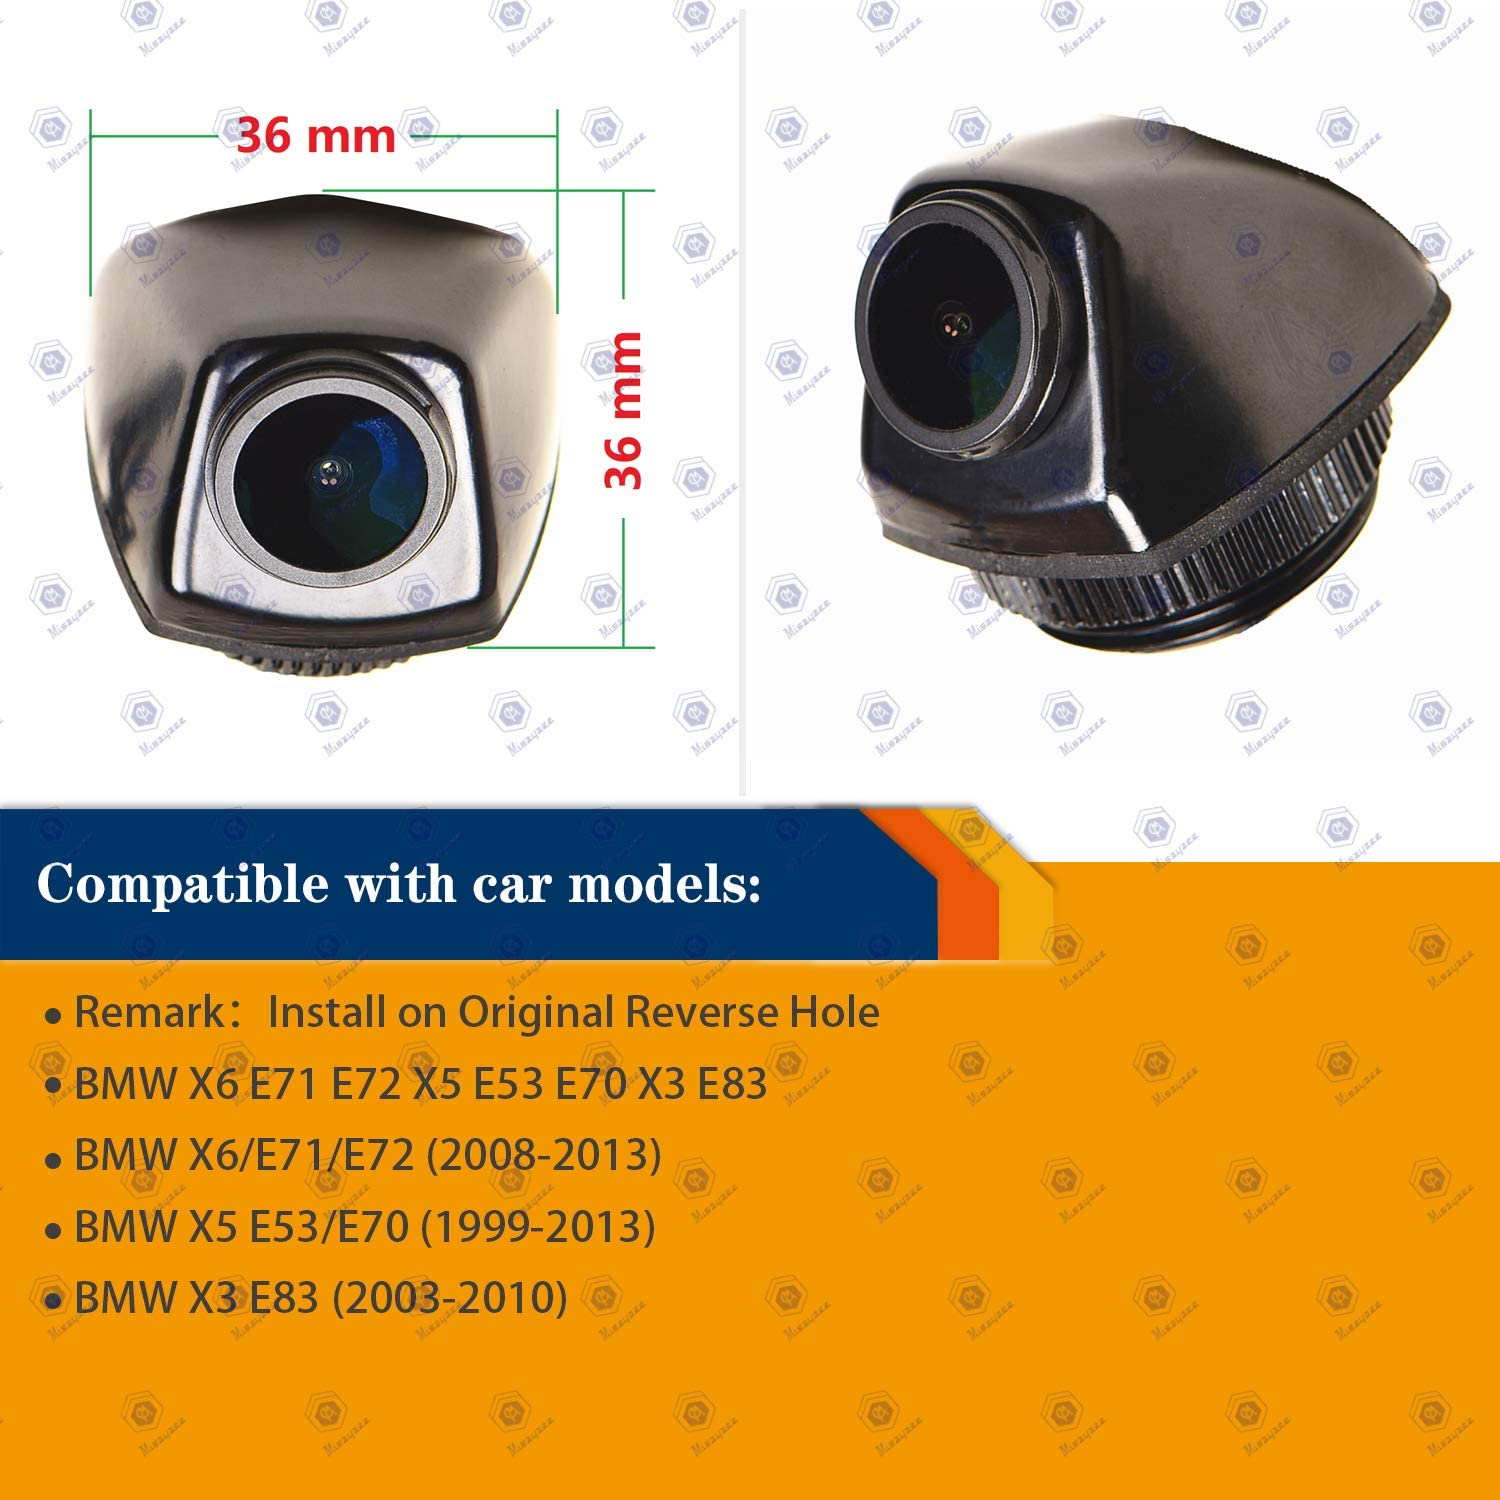 HD 1280x720p Reversing Camera Integrated in Number Plate Light License Rear View Backup Camera Waterproof Night Vision for BMW X6 E71 E72 X5 E53 E70 X3 E83